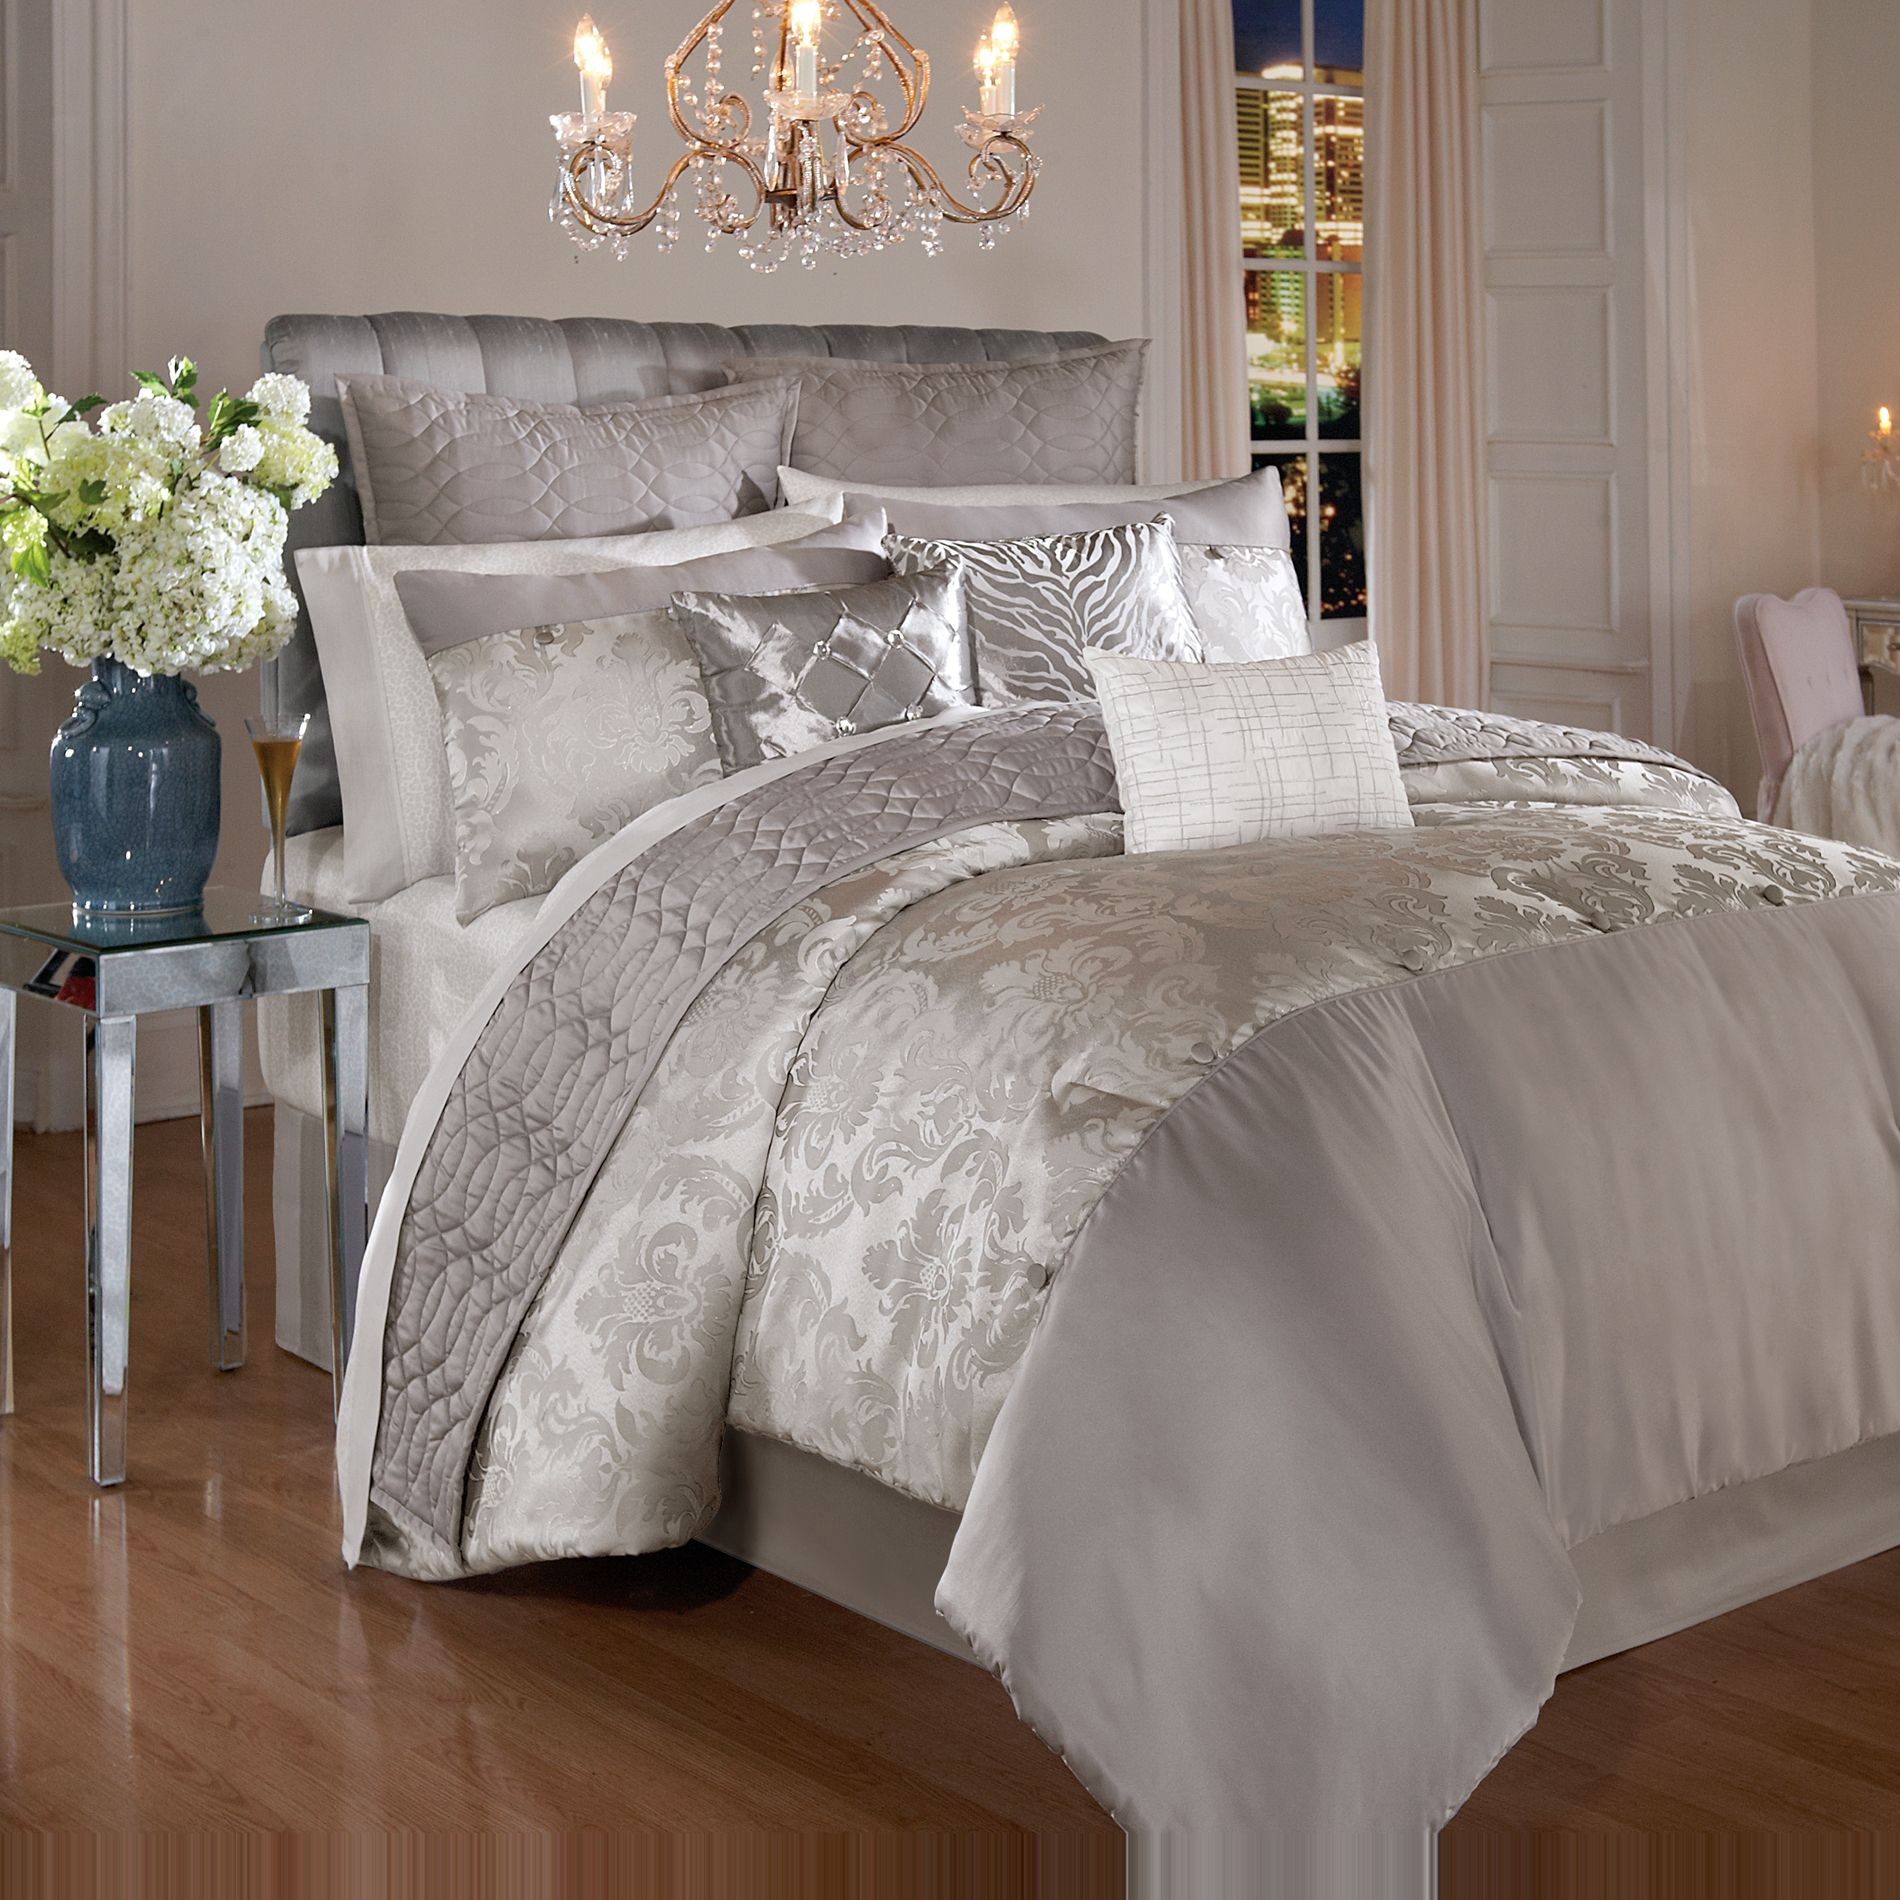 Kardashian Kollection Home-New York Dreamer Bedding Collection